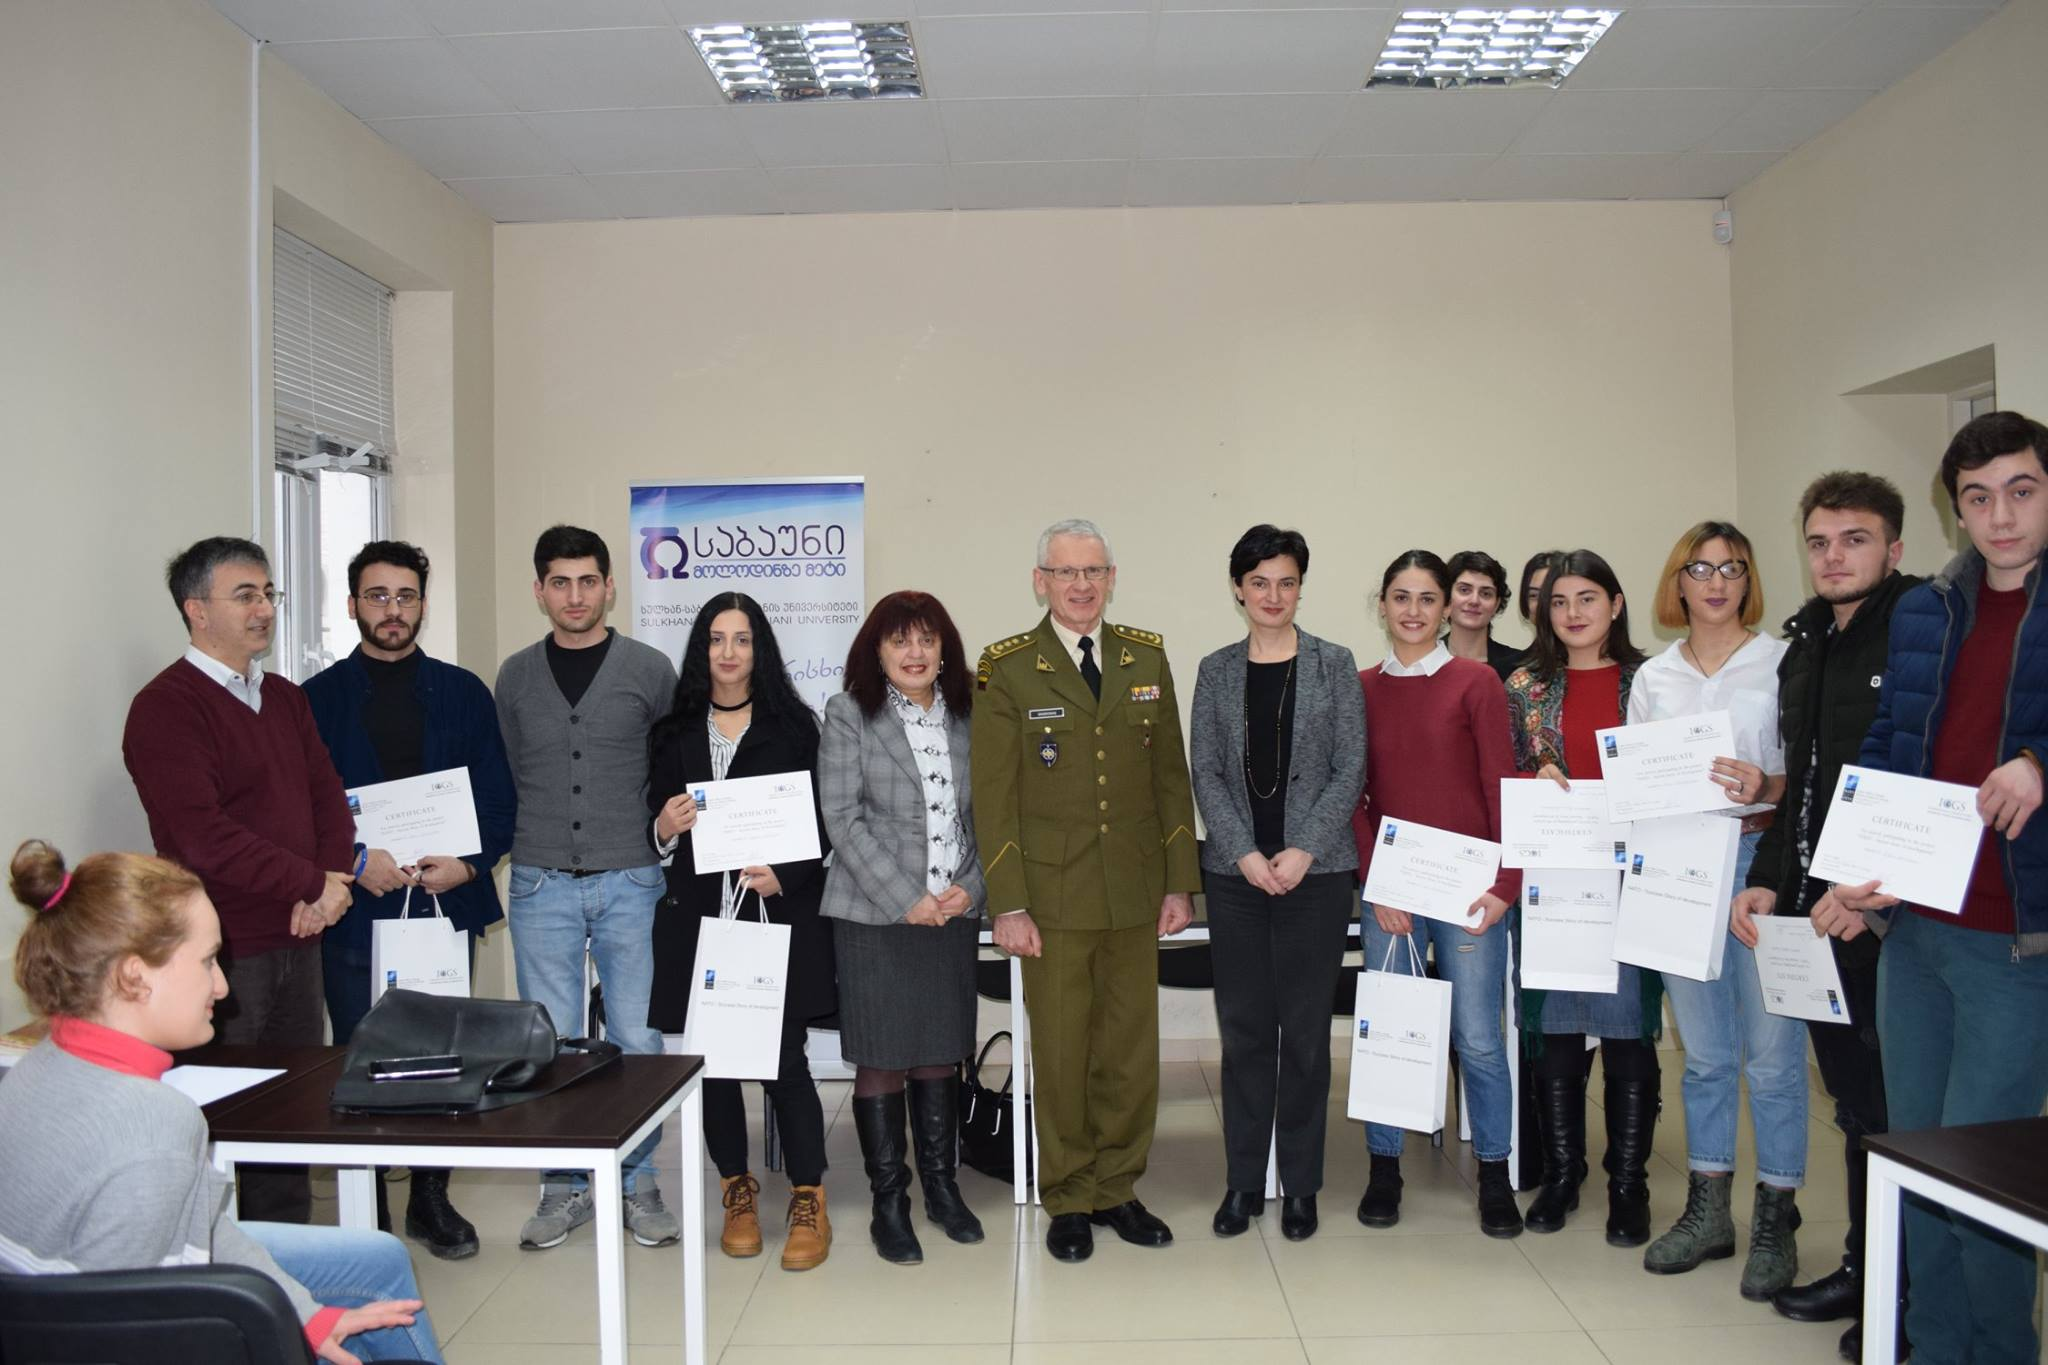 Sabaun students were awarded by a NATO Liaison Officer